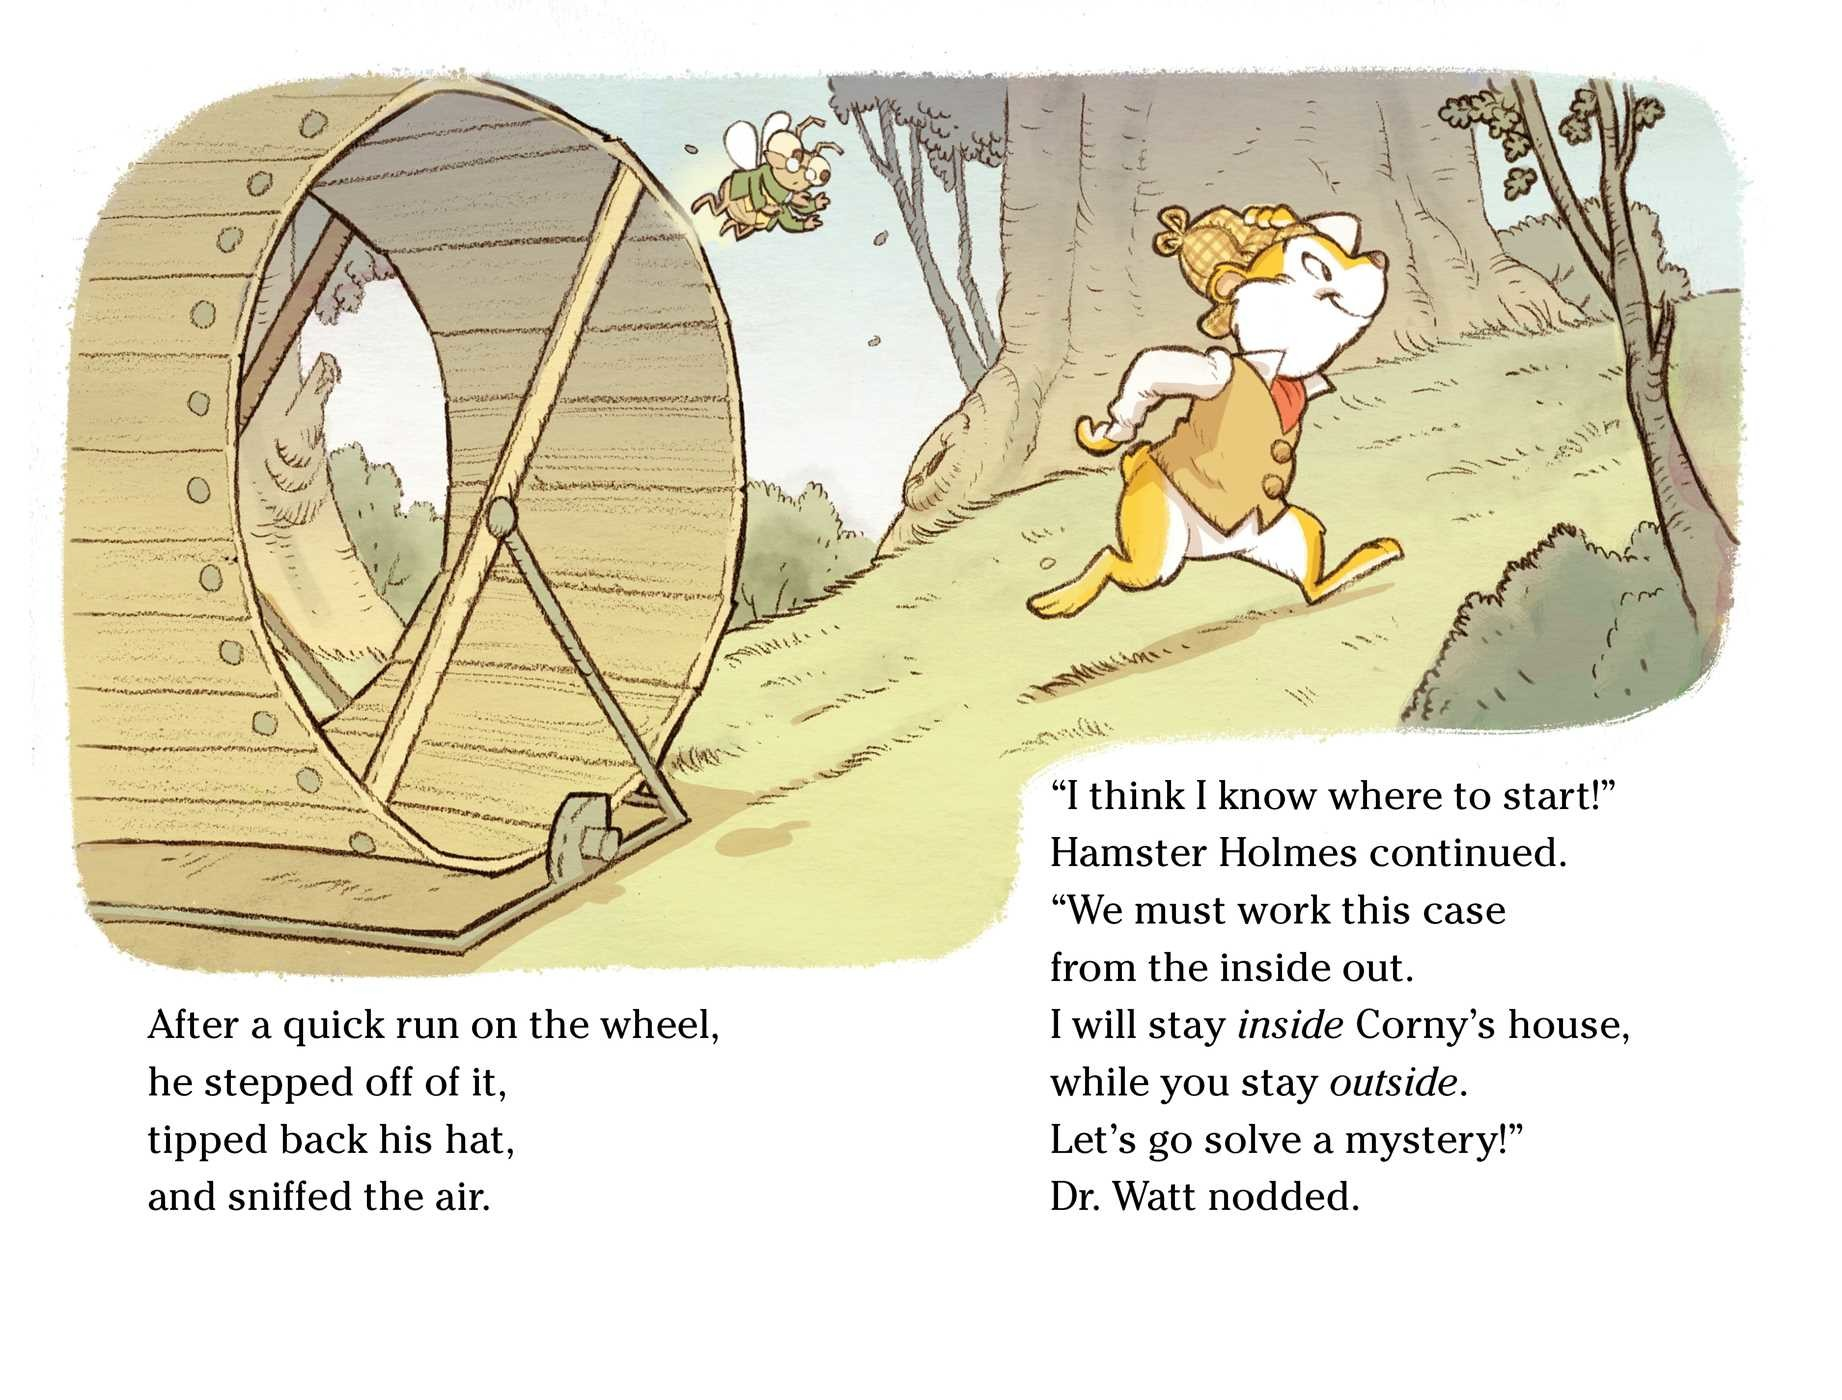 Hamster holmes a mystery comes knocking 9781481420365.in05